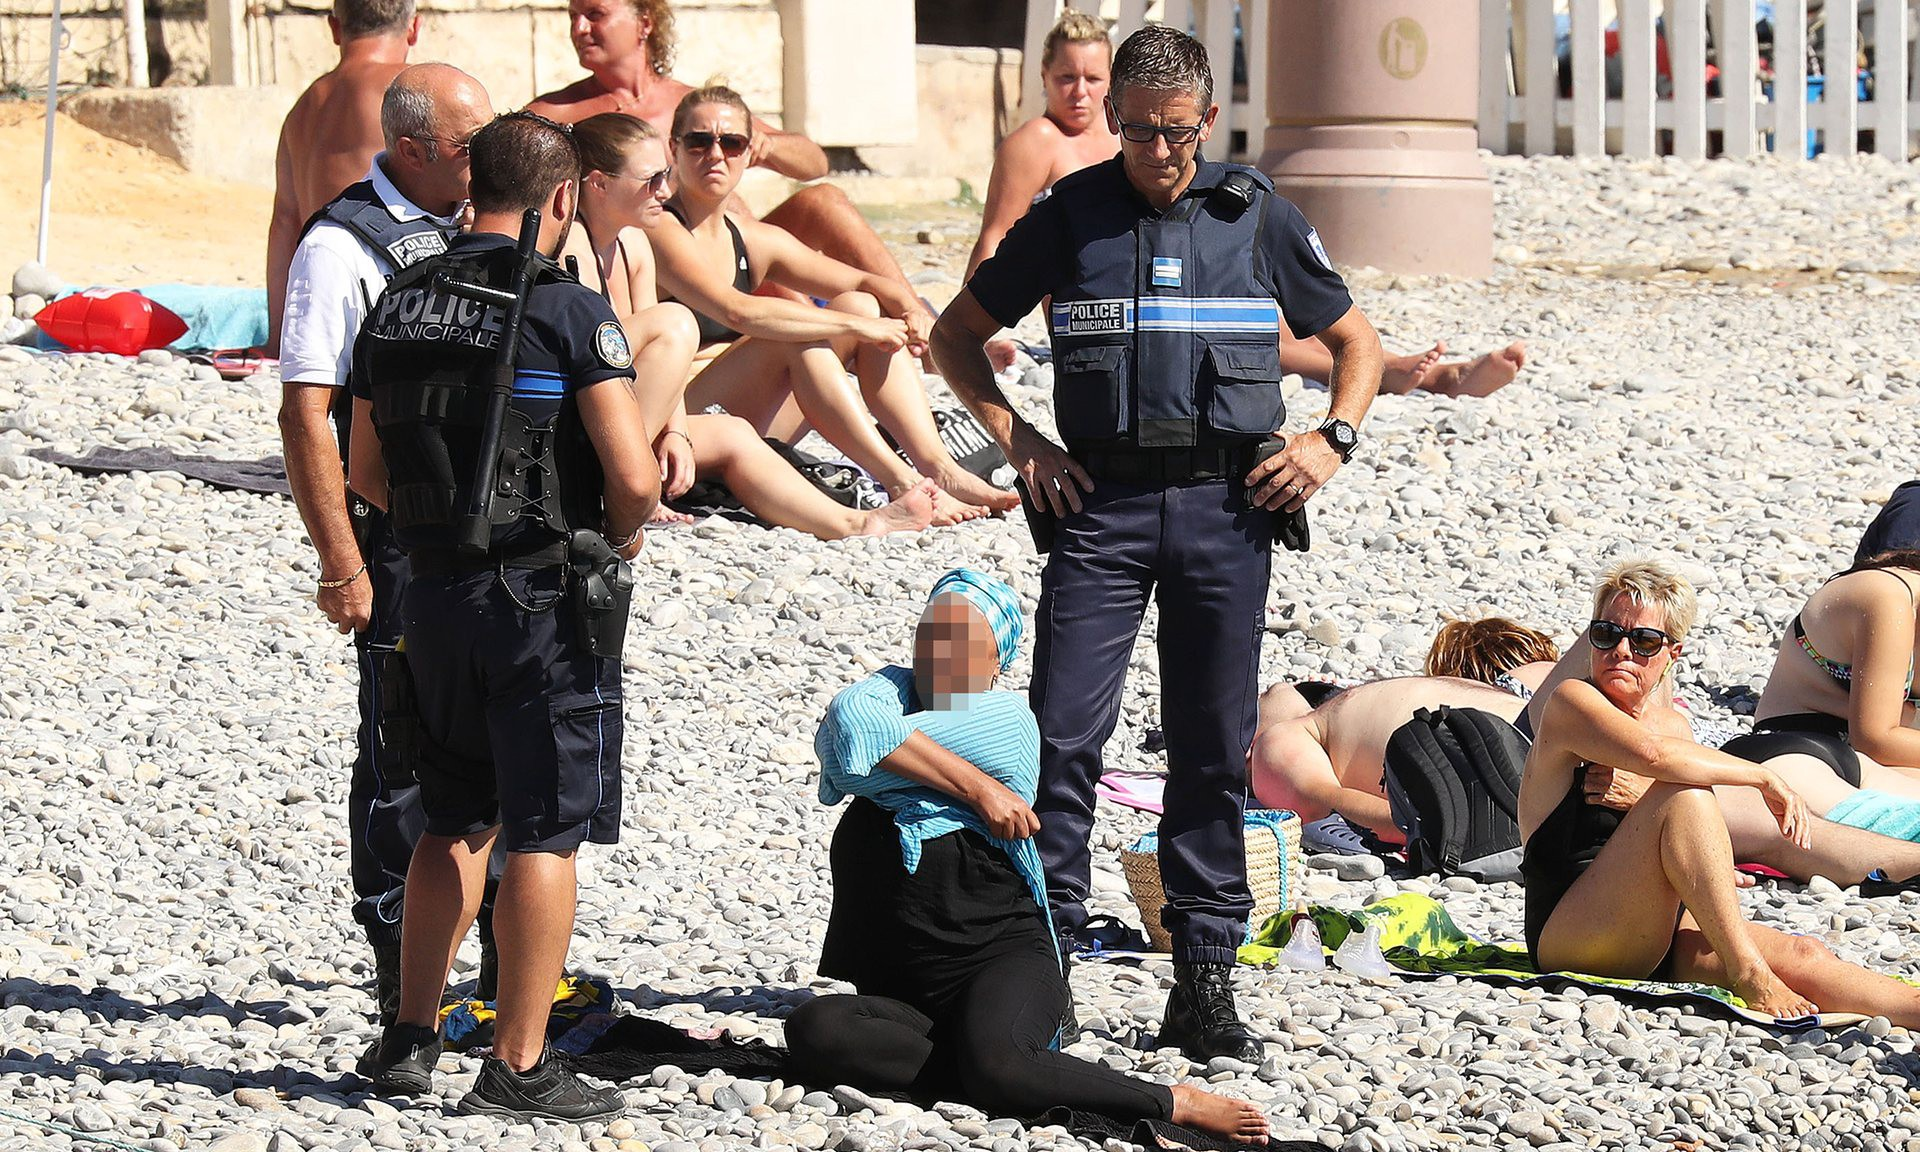 Woman forced to remove burkini in France